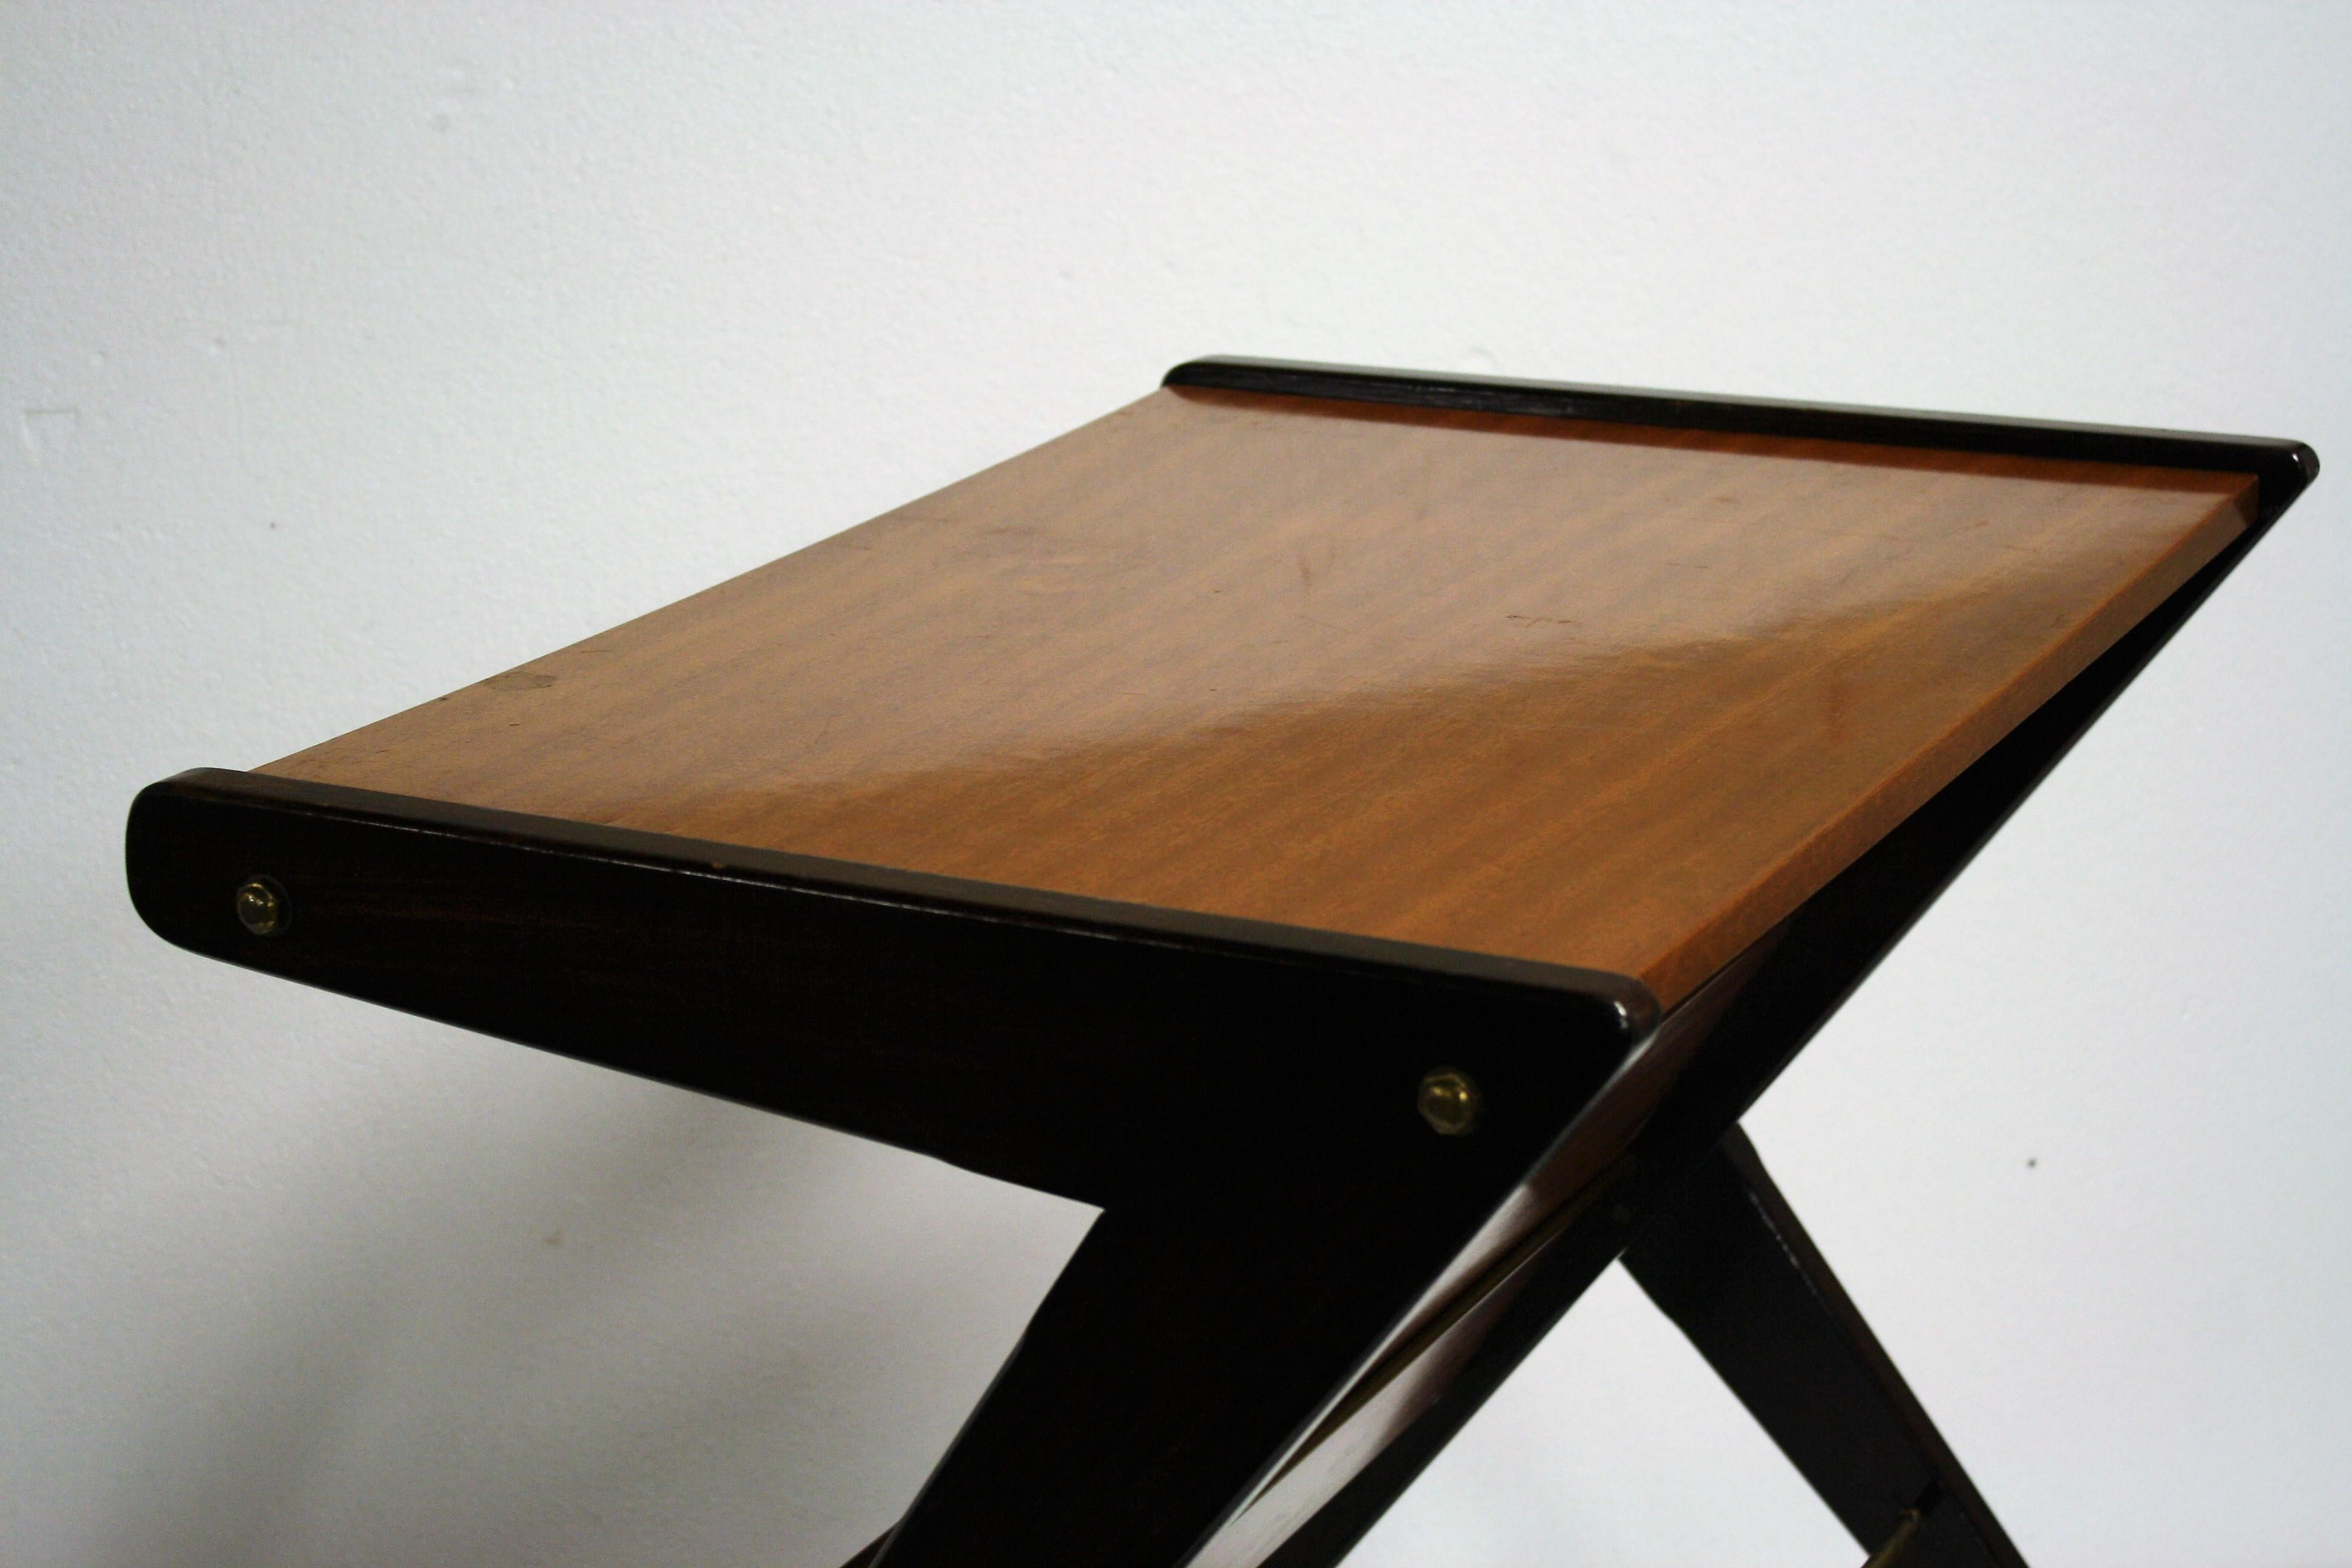 Teak Wooden Side Table On Wheels. This U0027Zu0027 Shaped Table Is A